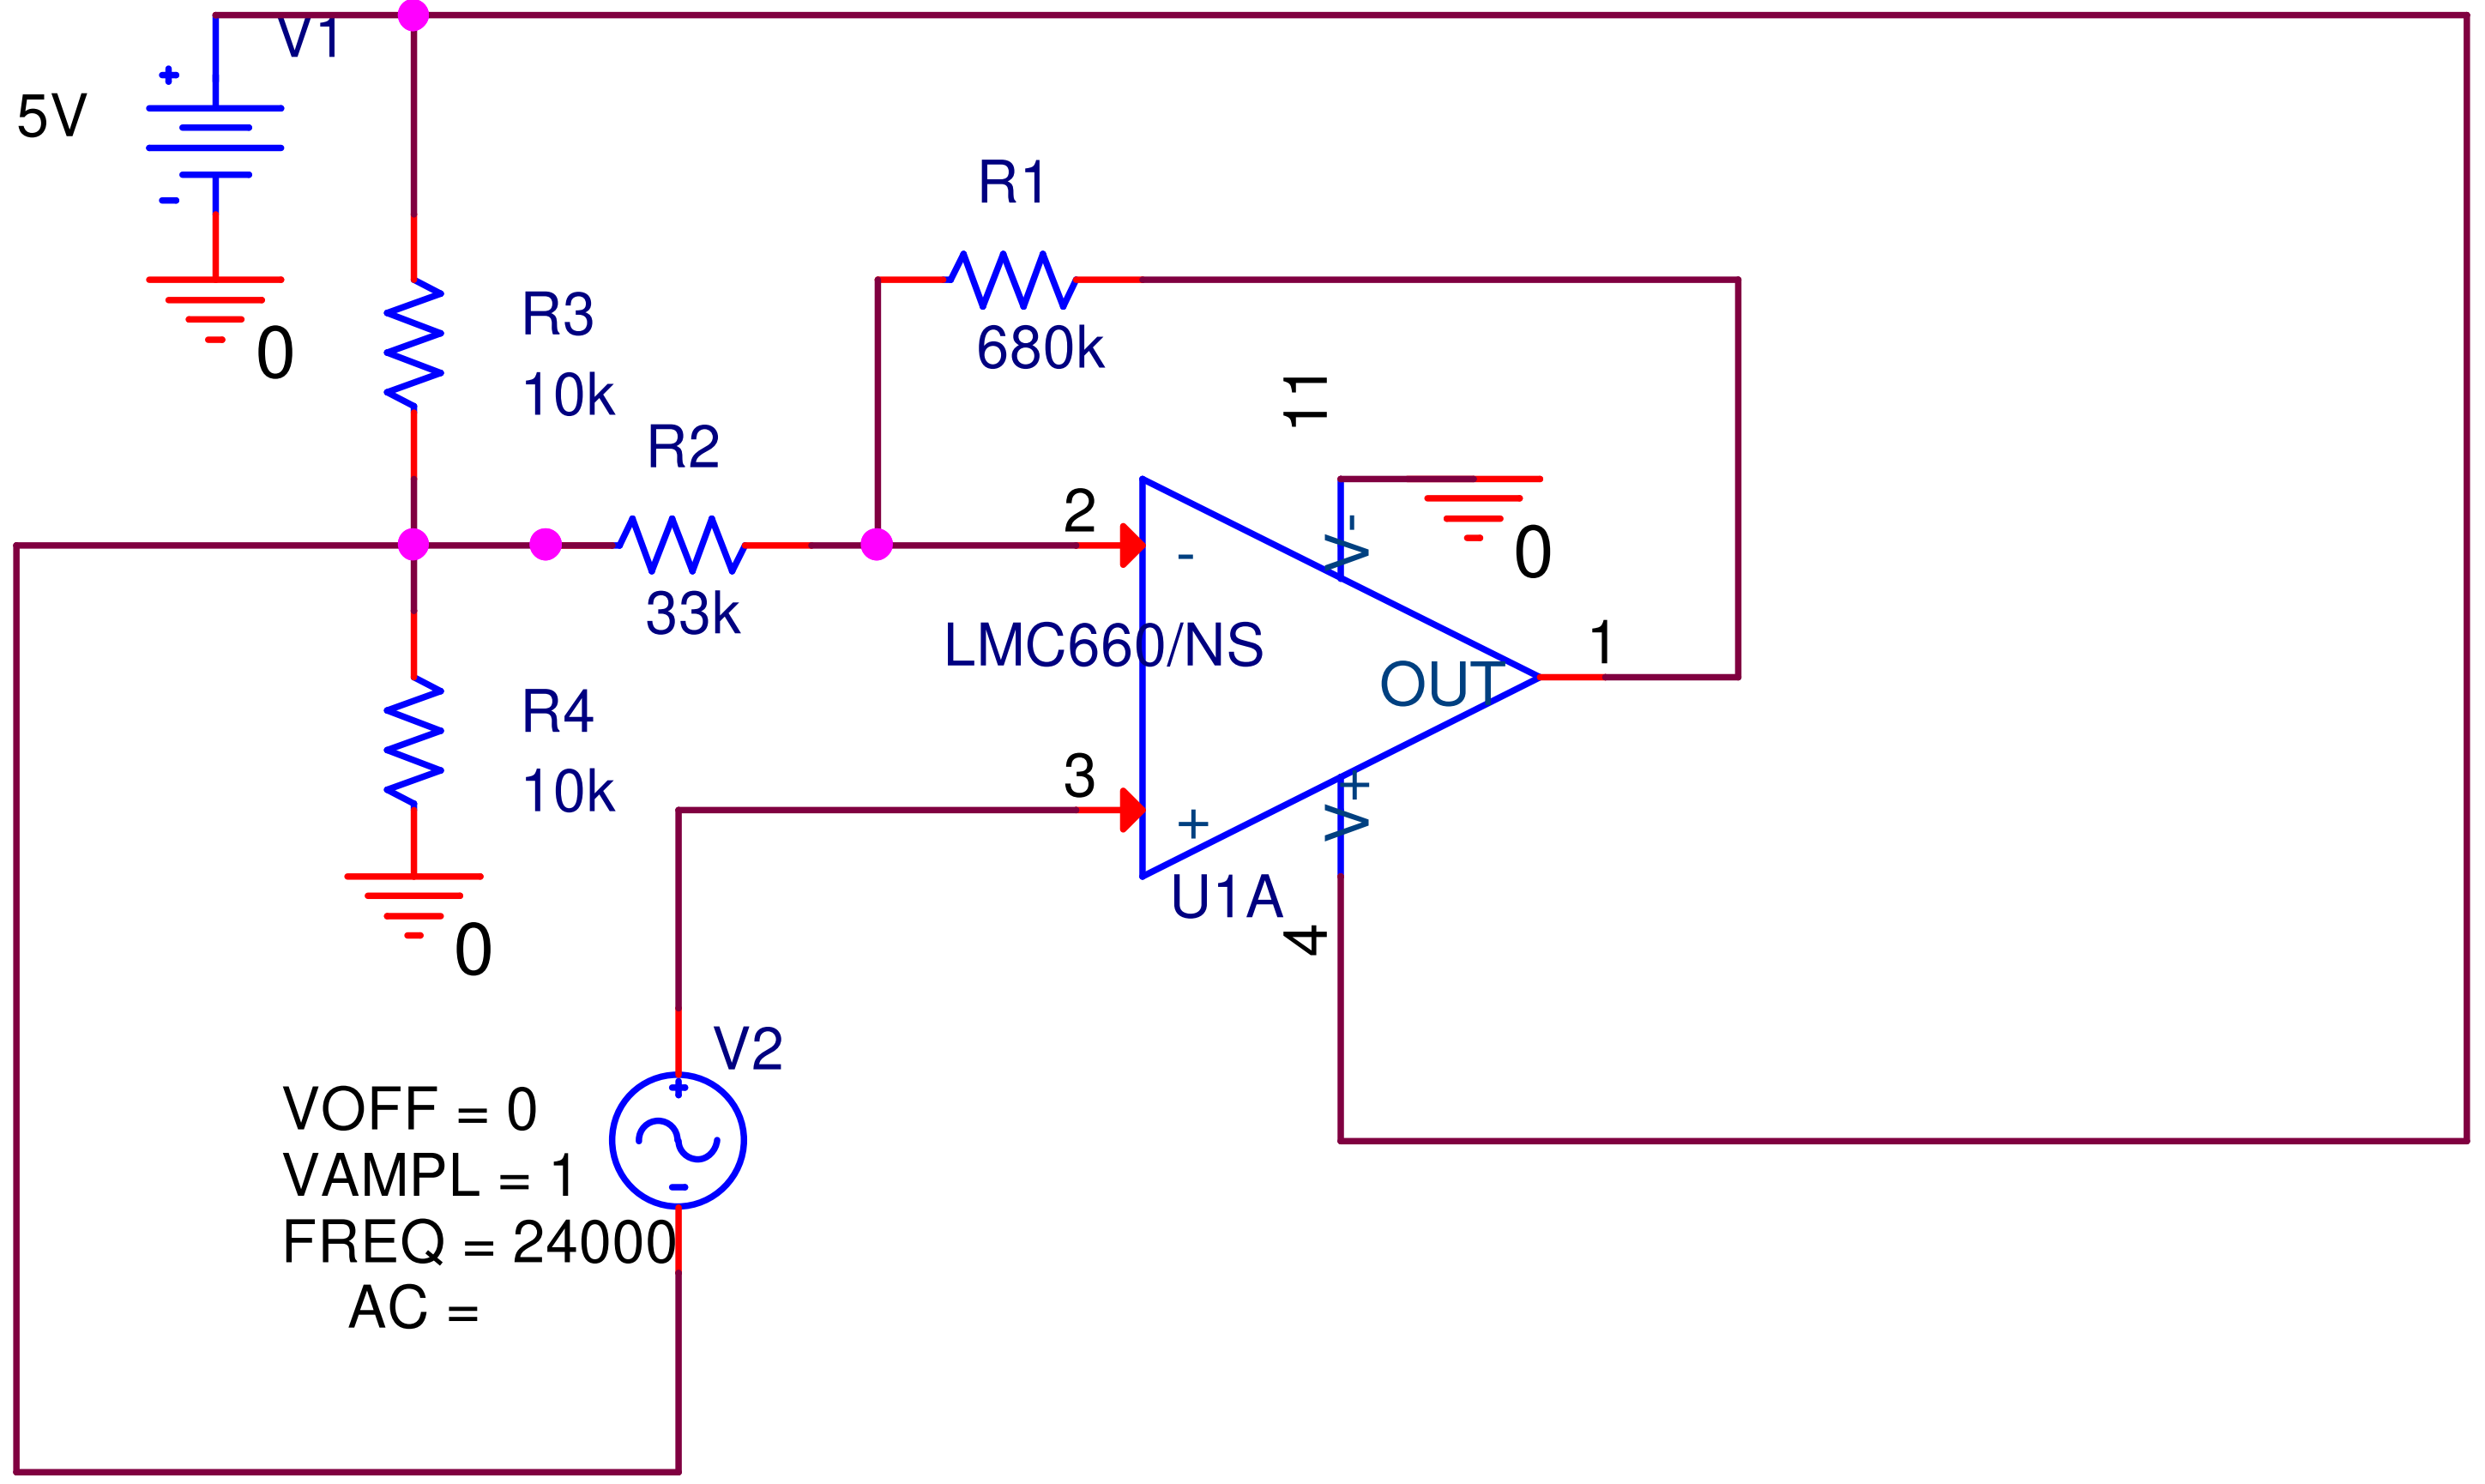 Serial Communication Via Audio On Android Opamp Comparator Circuit The Input Signal Is Represented By V2 And Output Appears At Op Amp Out Terminal A Non Inverting With Positive